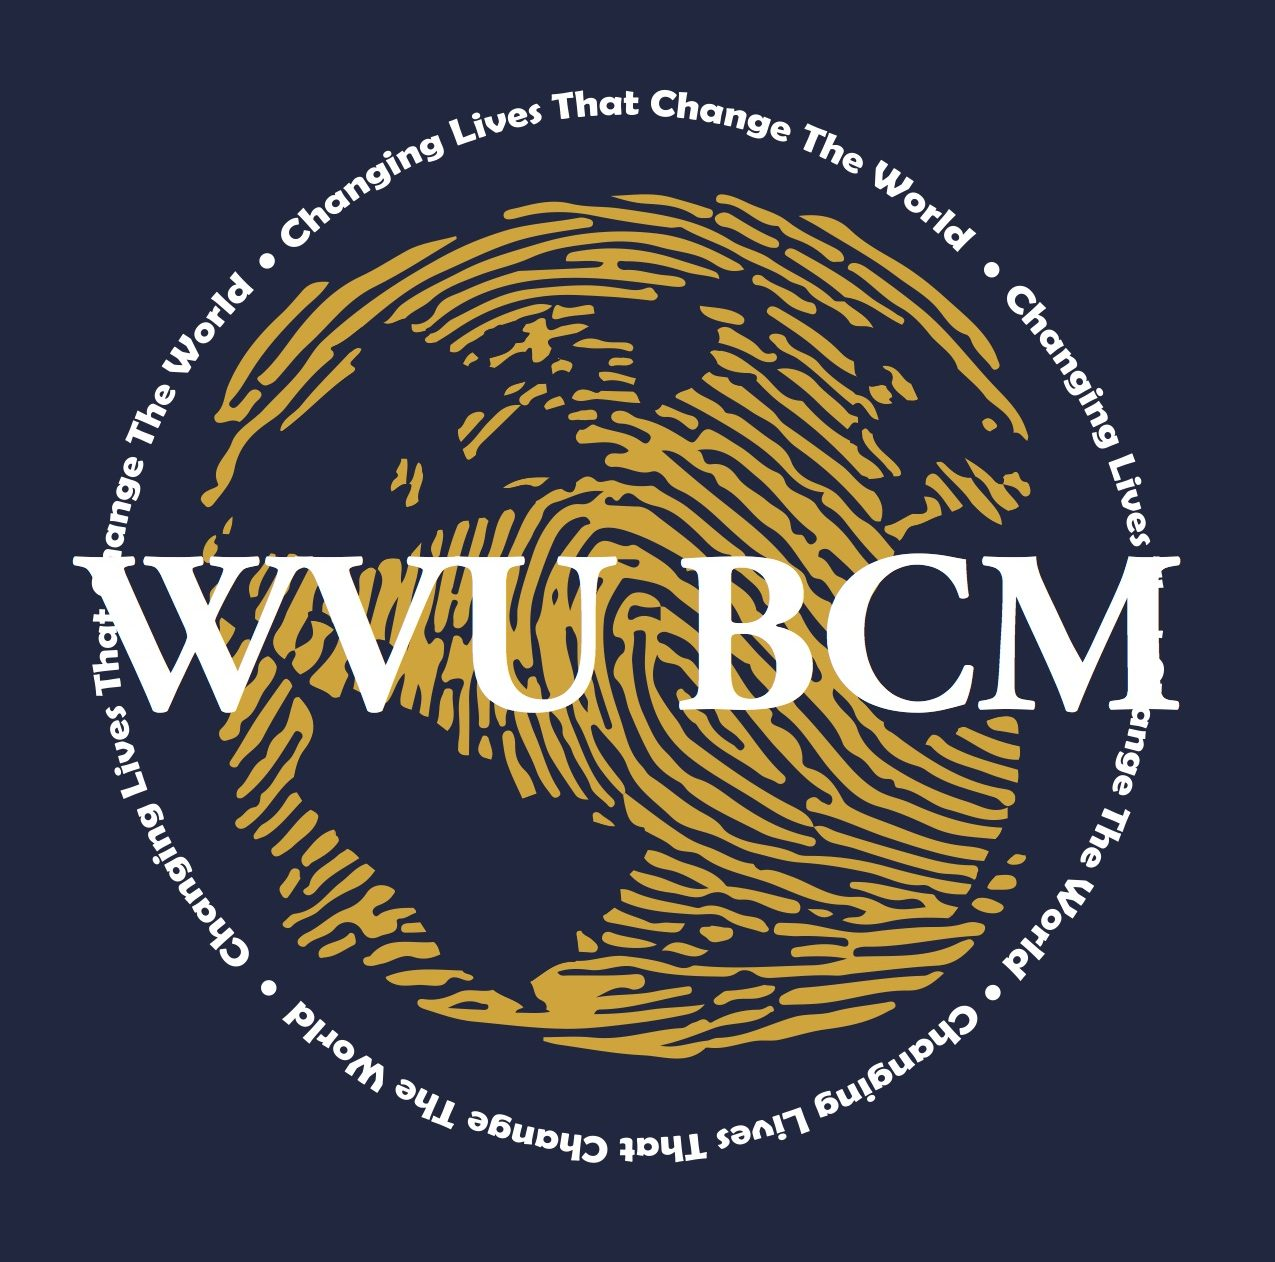 Baptist Campus Ministries at WVU